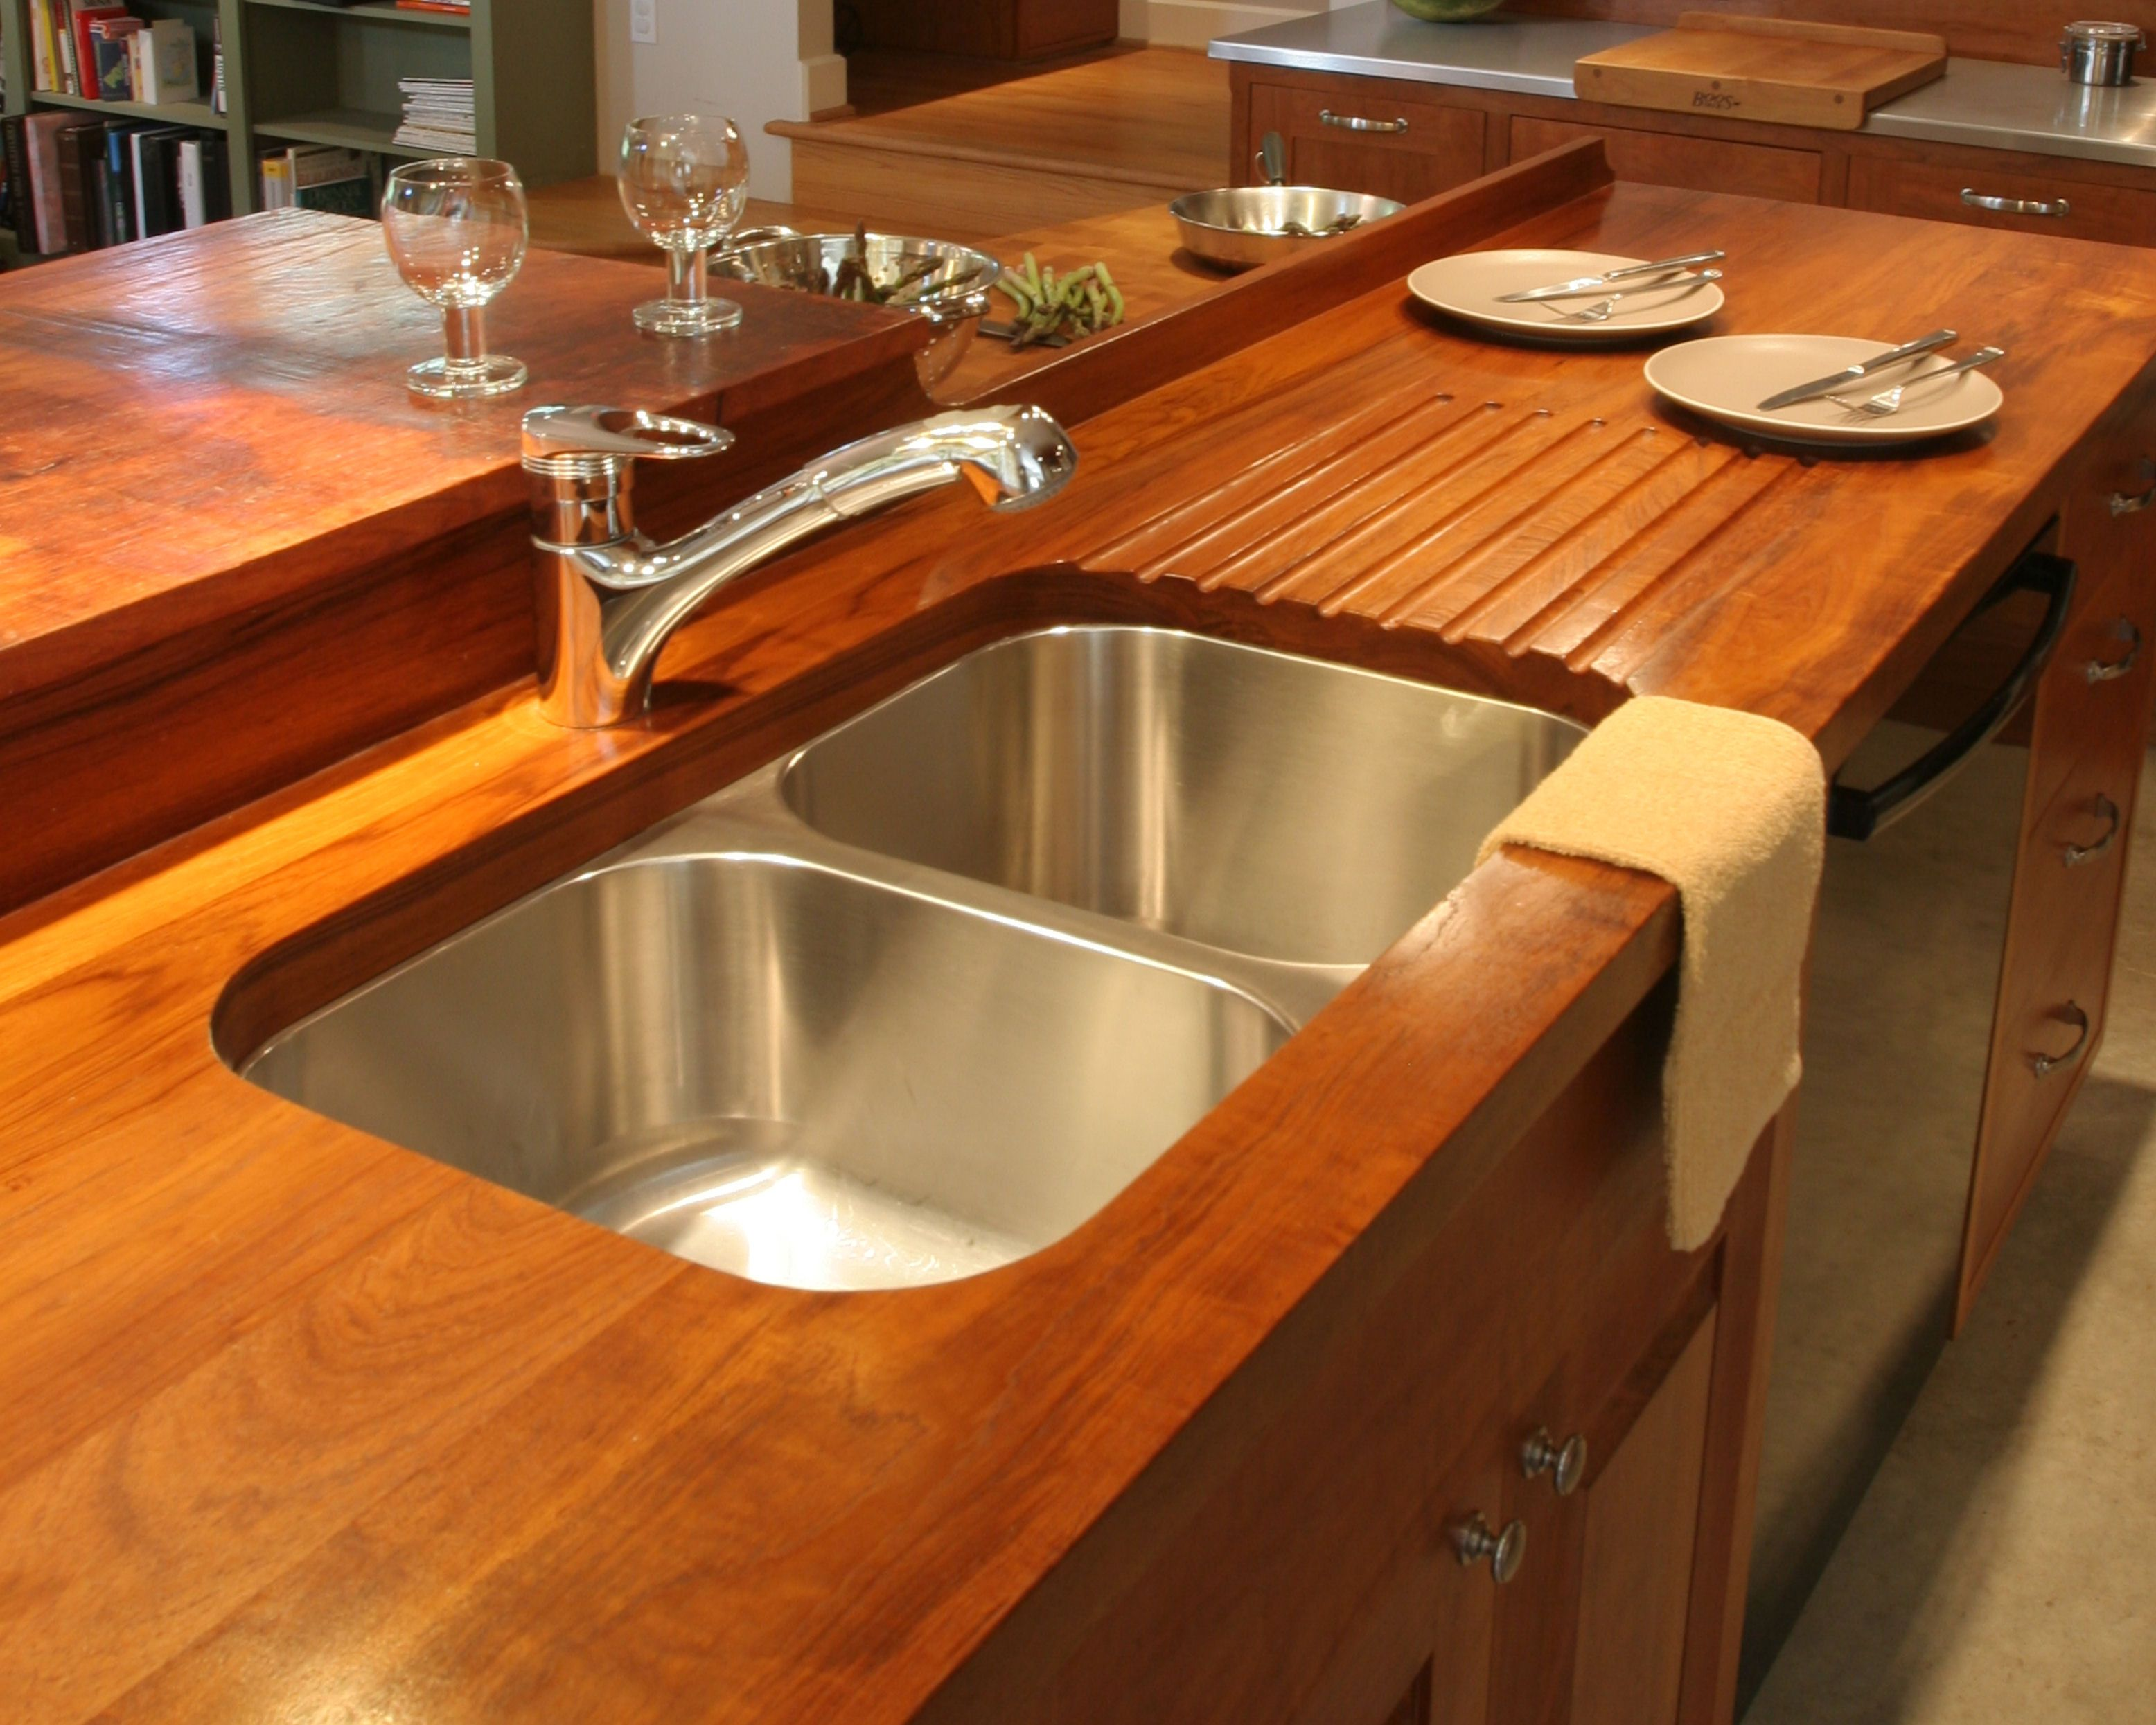 Custom Solid Wood Face Grain Teak Counter Top With Integrated Sloping Drain Board And Under Mount Sink Kuchenarbeitsplatte Arbeitsplatte Kuchenumbau